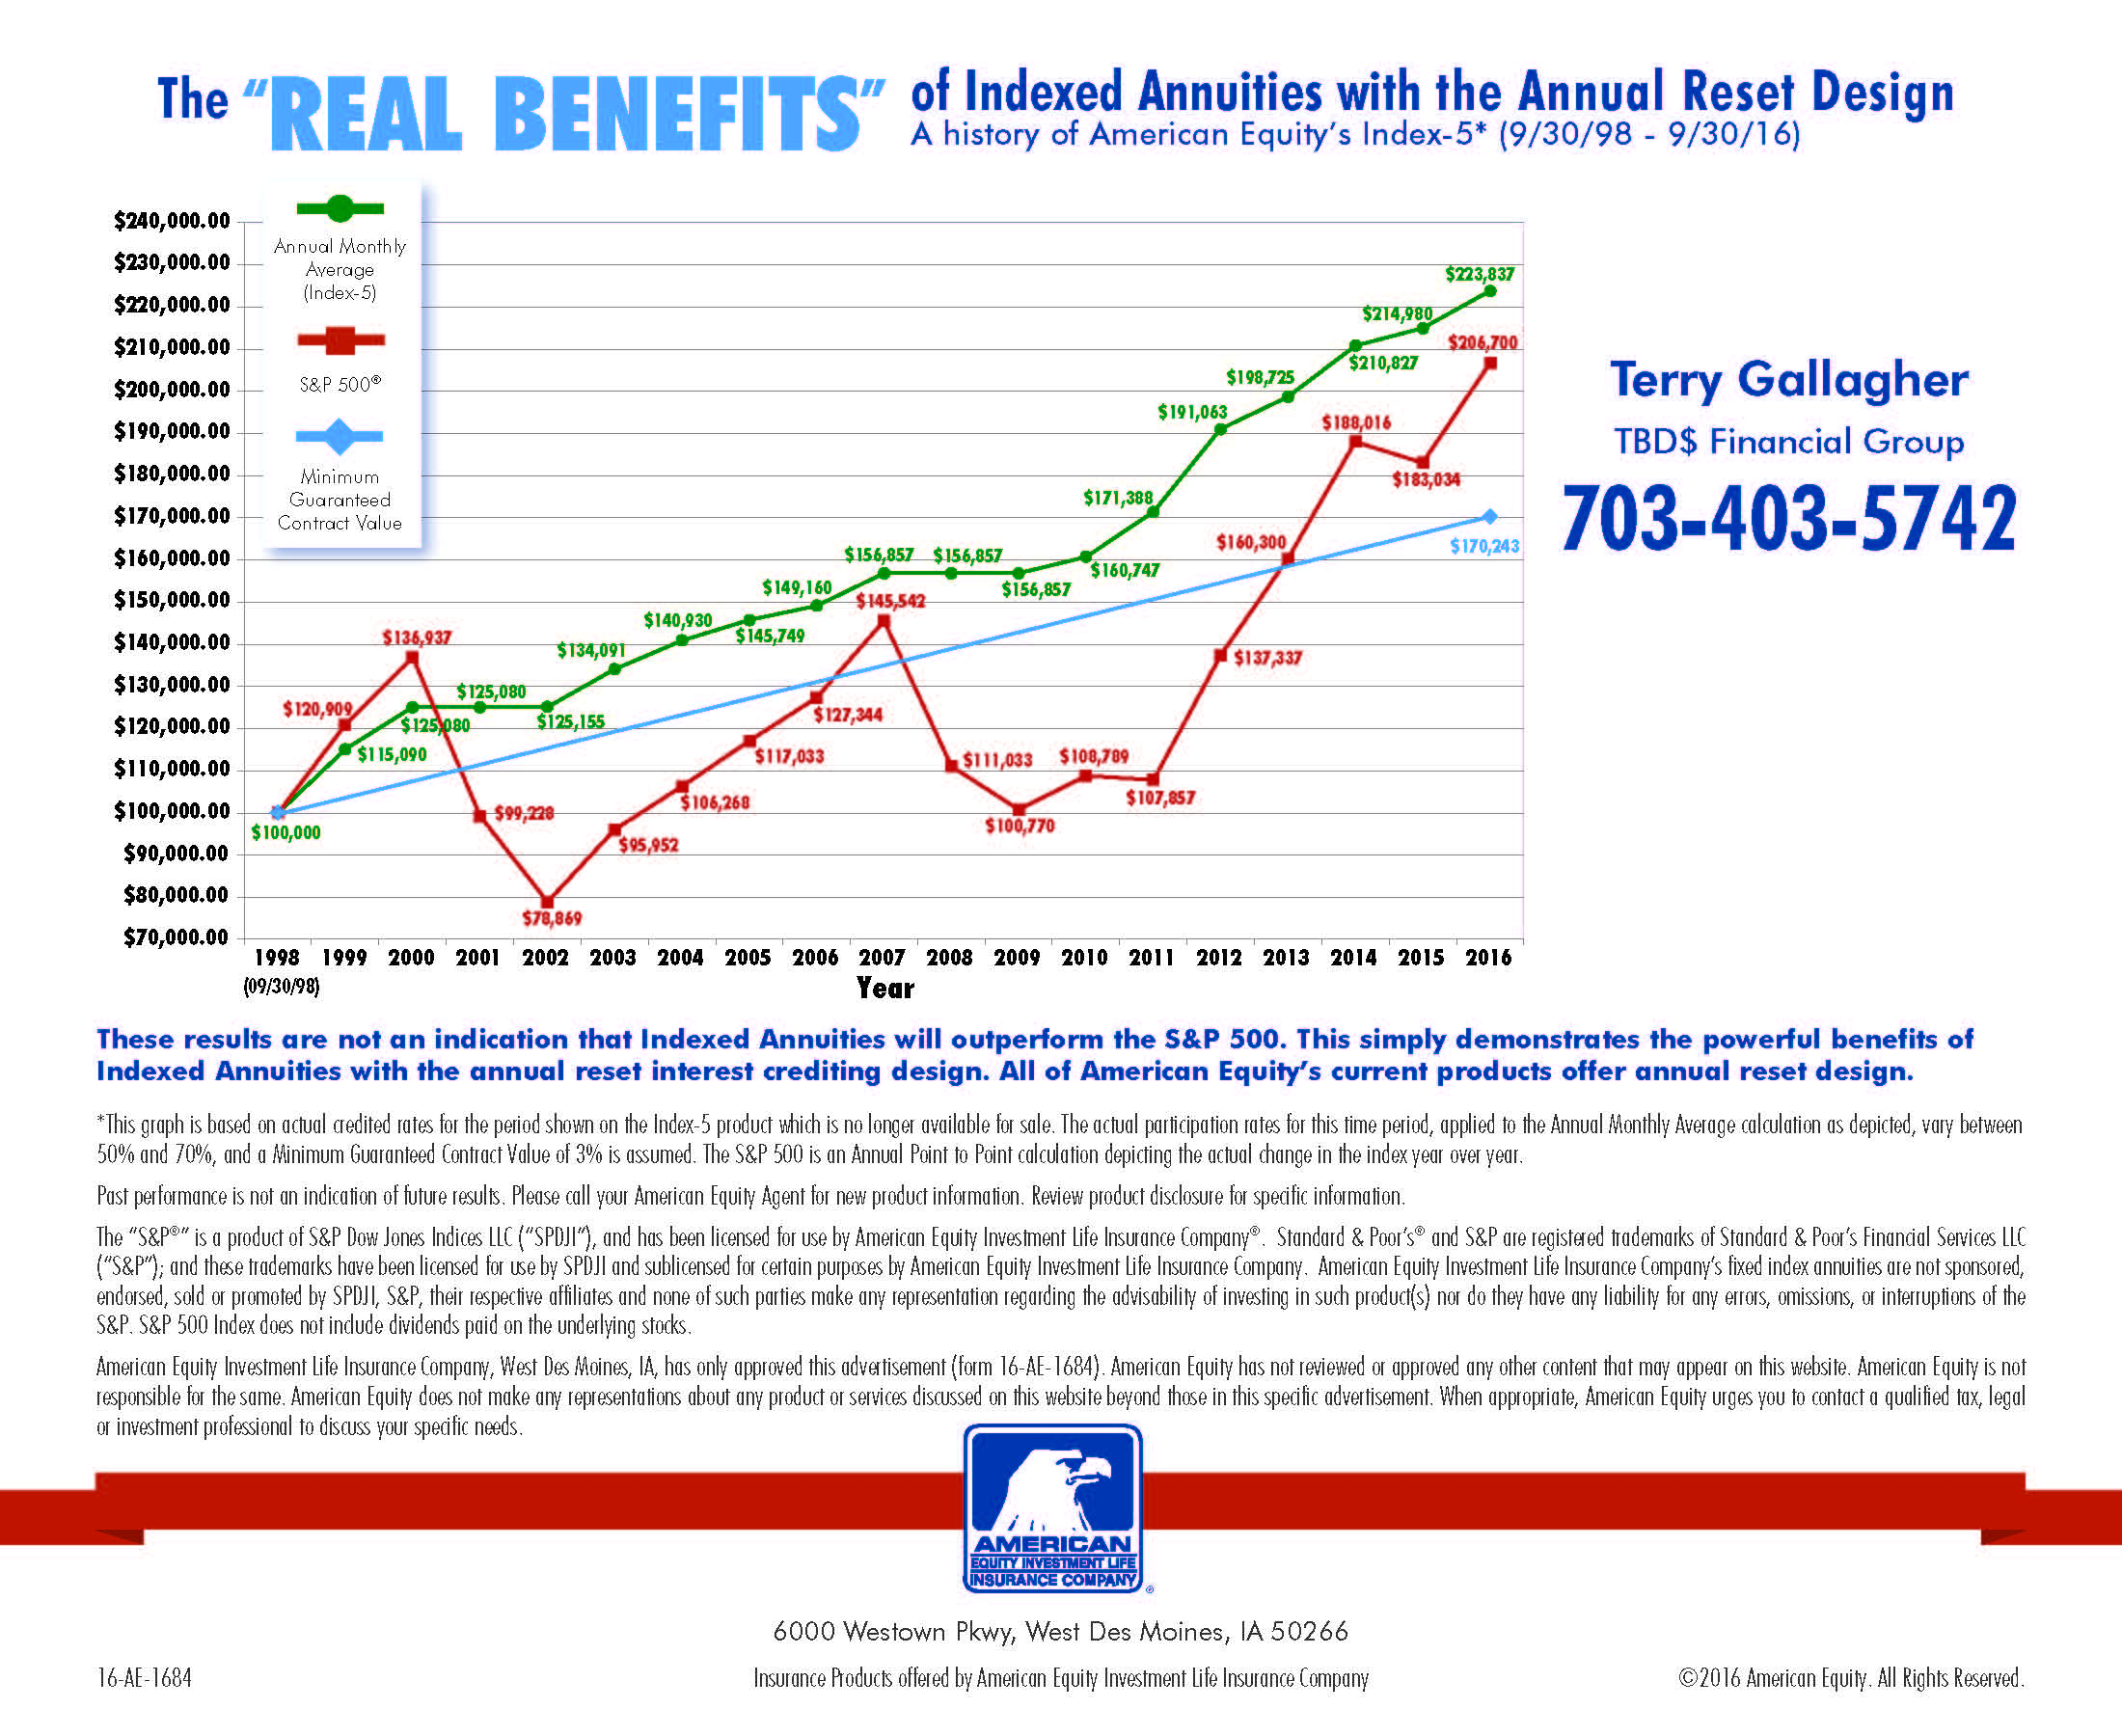 tbds financial group com american equity investment life insurance company west des moines ia has only approved this advertisement form 1684 american equity has not reviewed